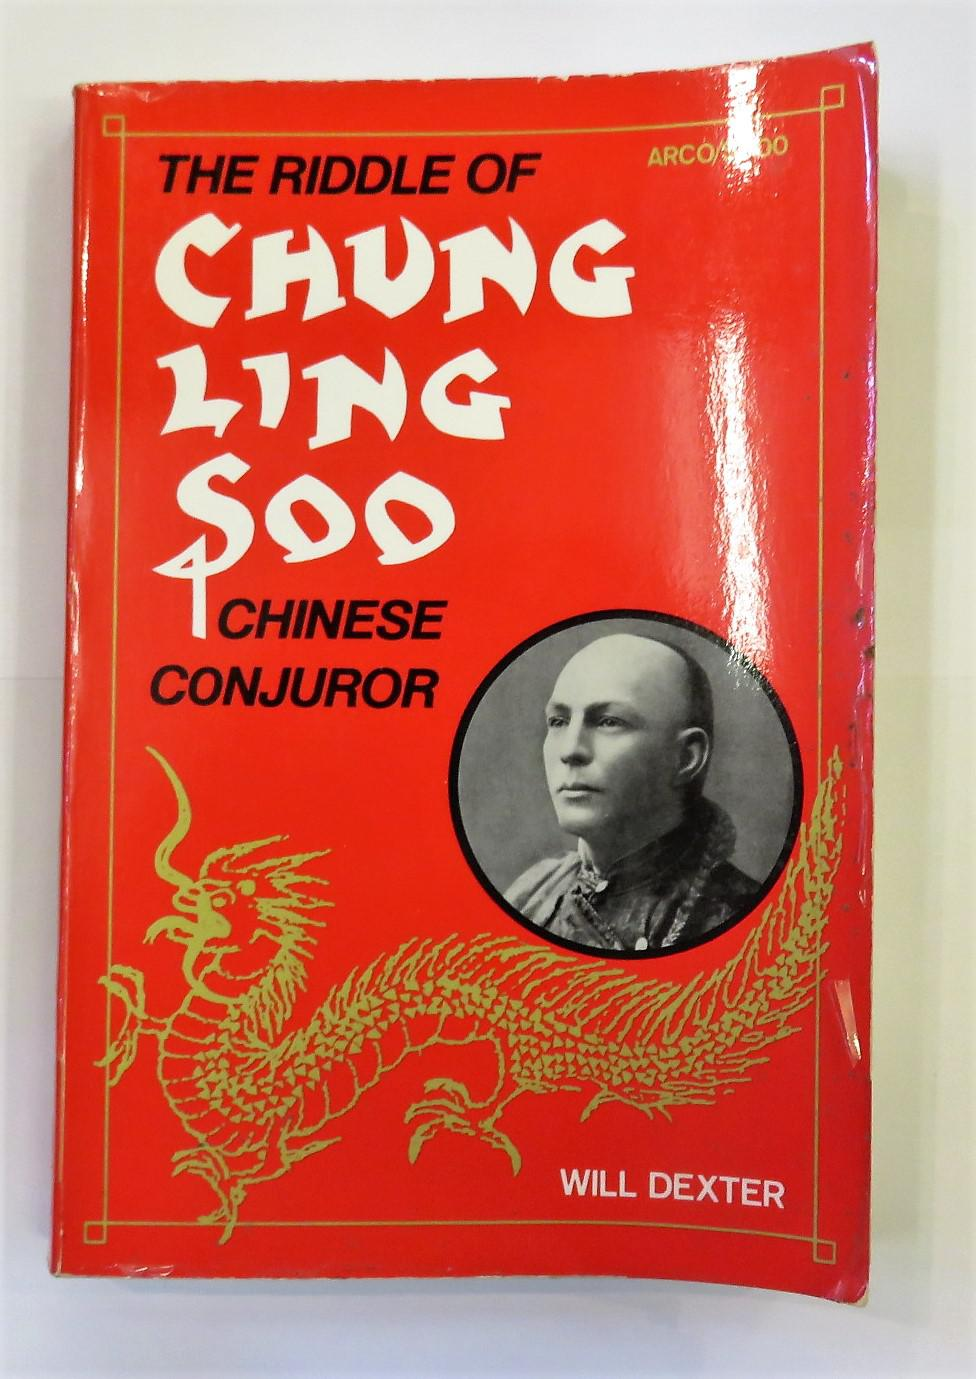 The Riddle Of Chung Ling Soo Chinese Conjuror